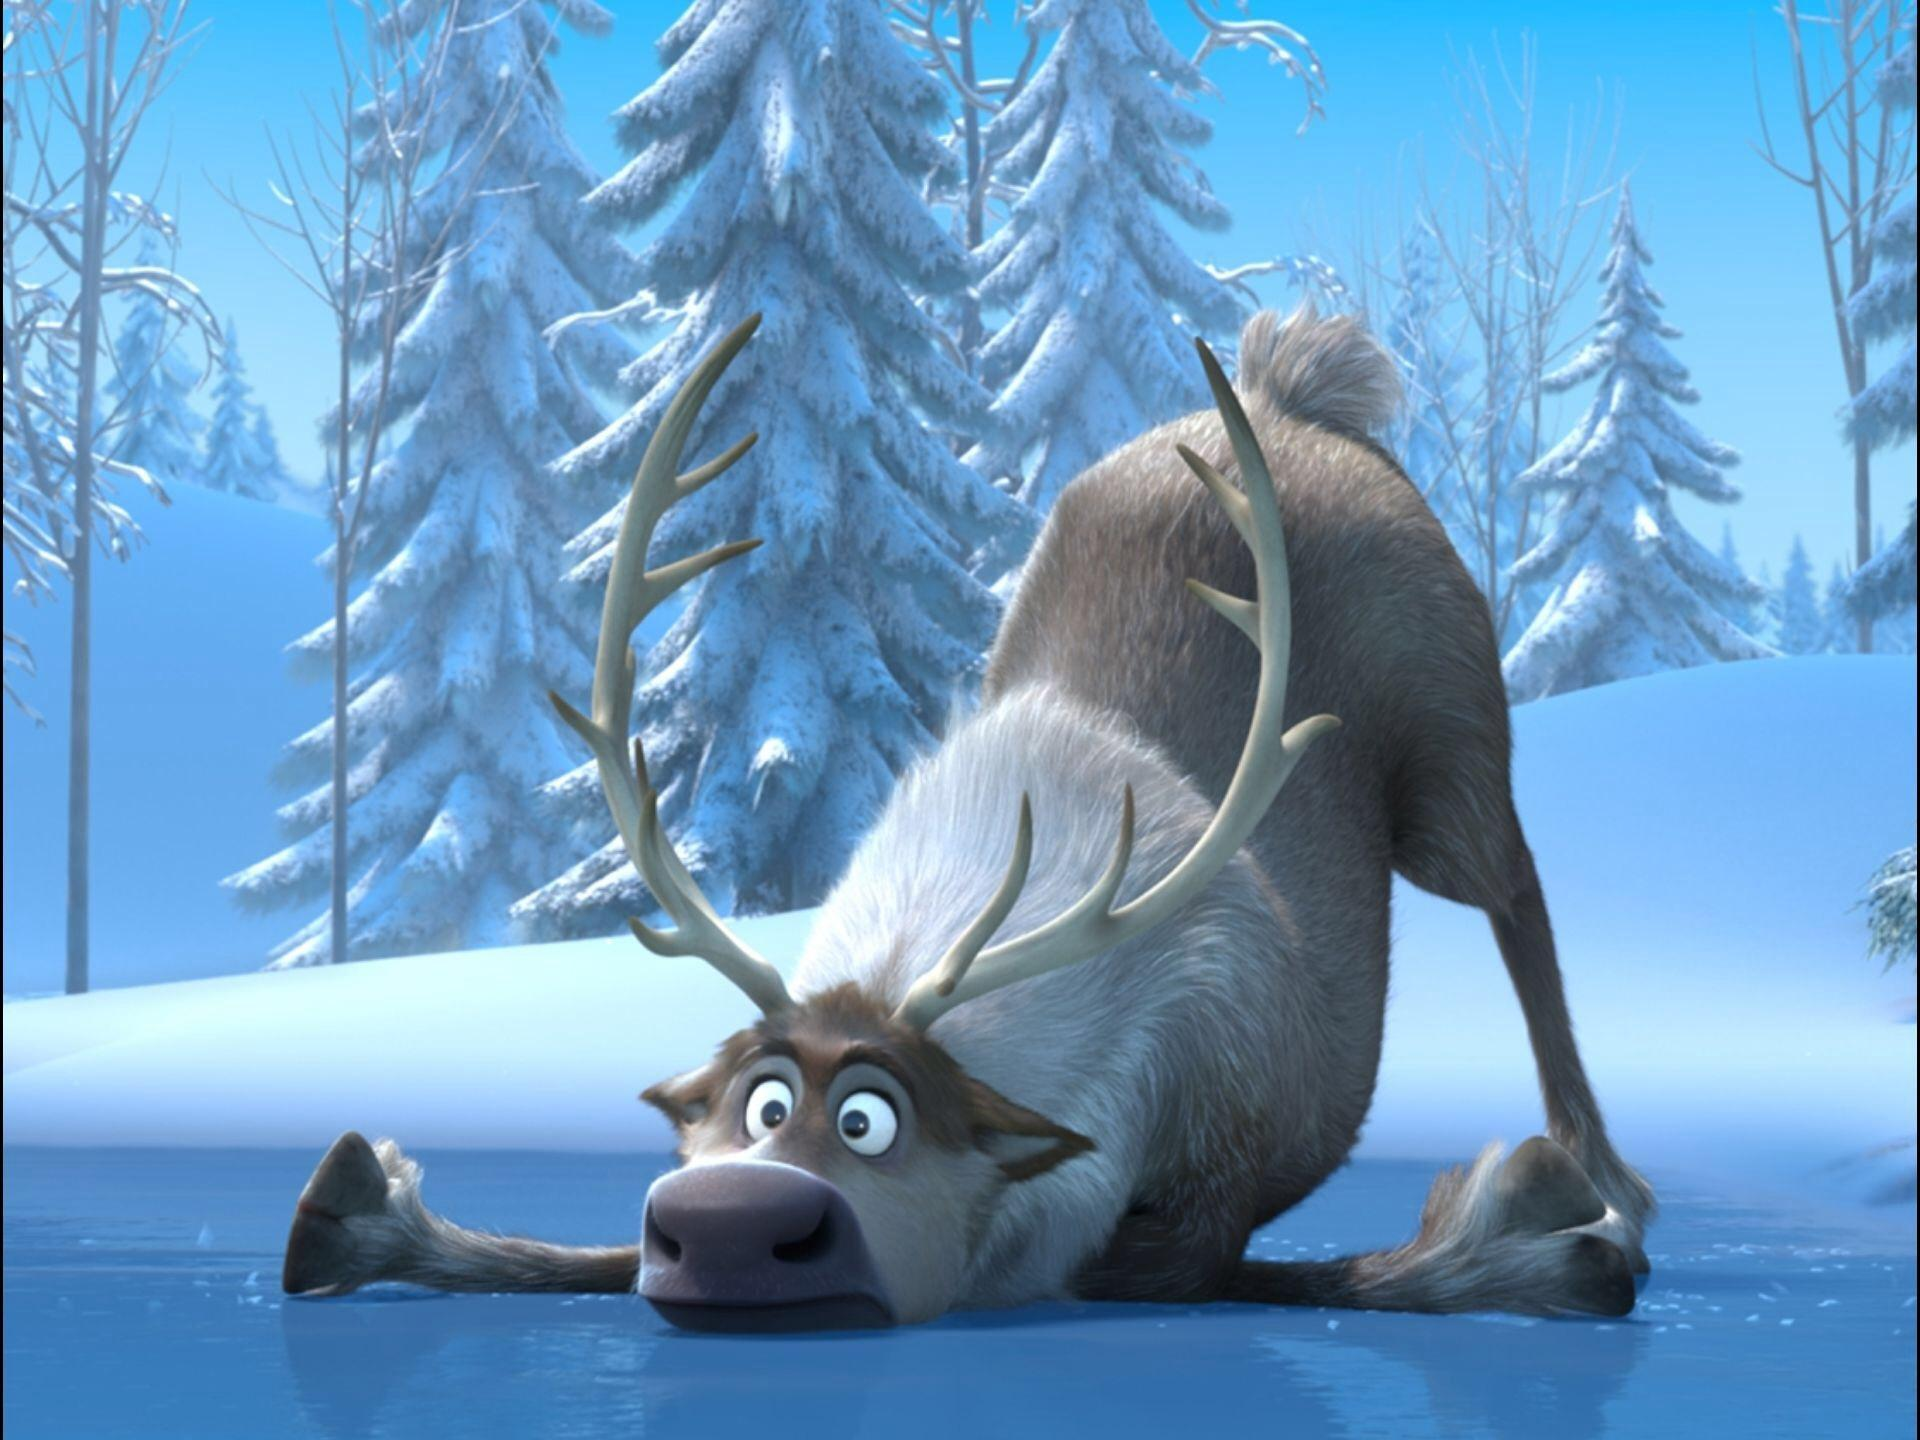 What is the name of Kristoff's reindeer?